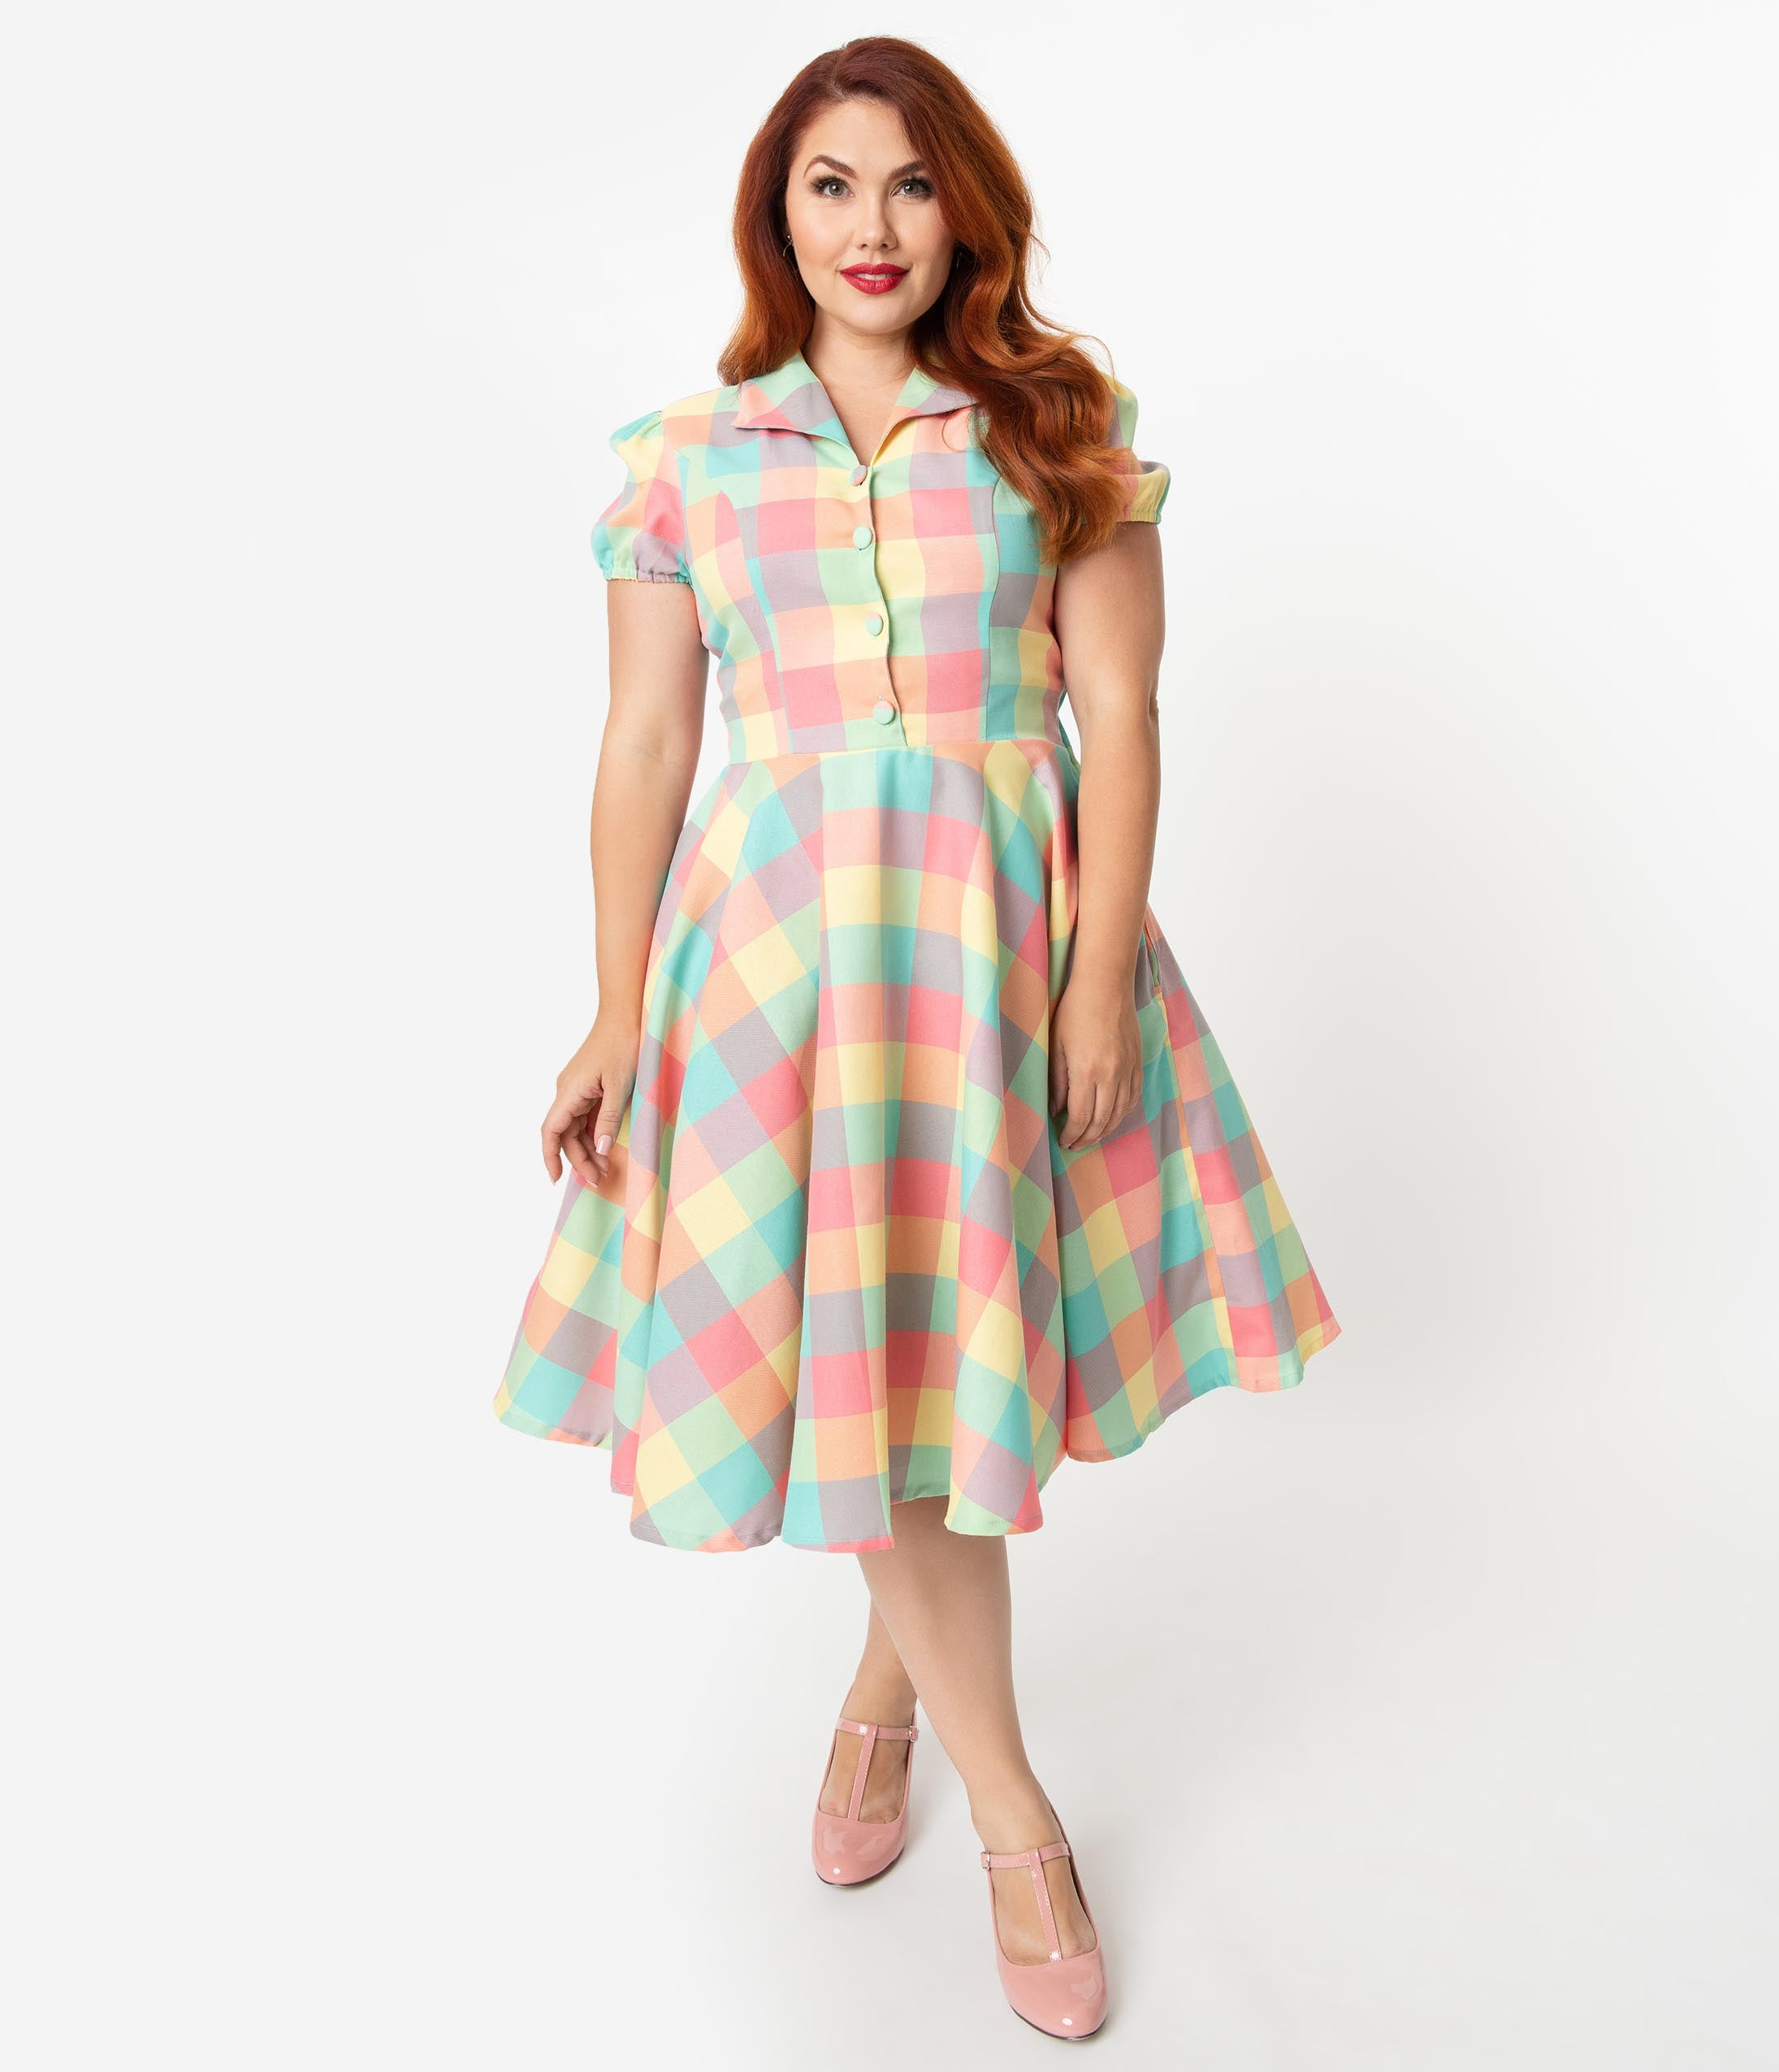 1950s Dresses, 50s Dresses | 1950s Style Dresses Plus Size 1950S Style Pastel Summer Plaid Mona Swing Dress $78.00 AT vintagedancer.com